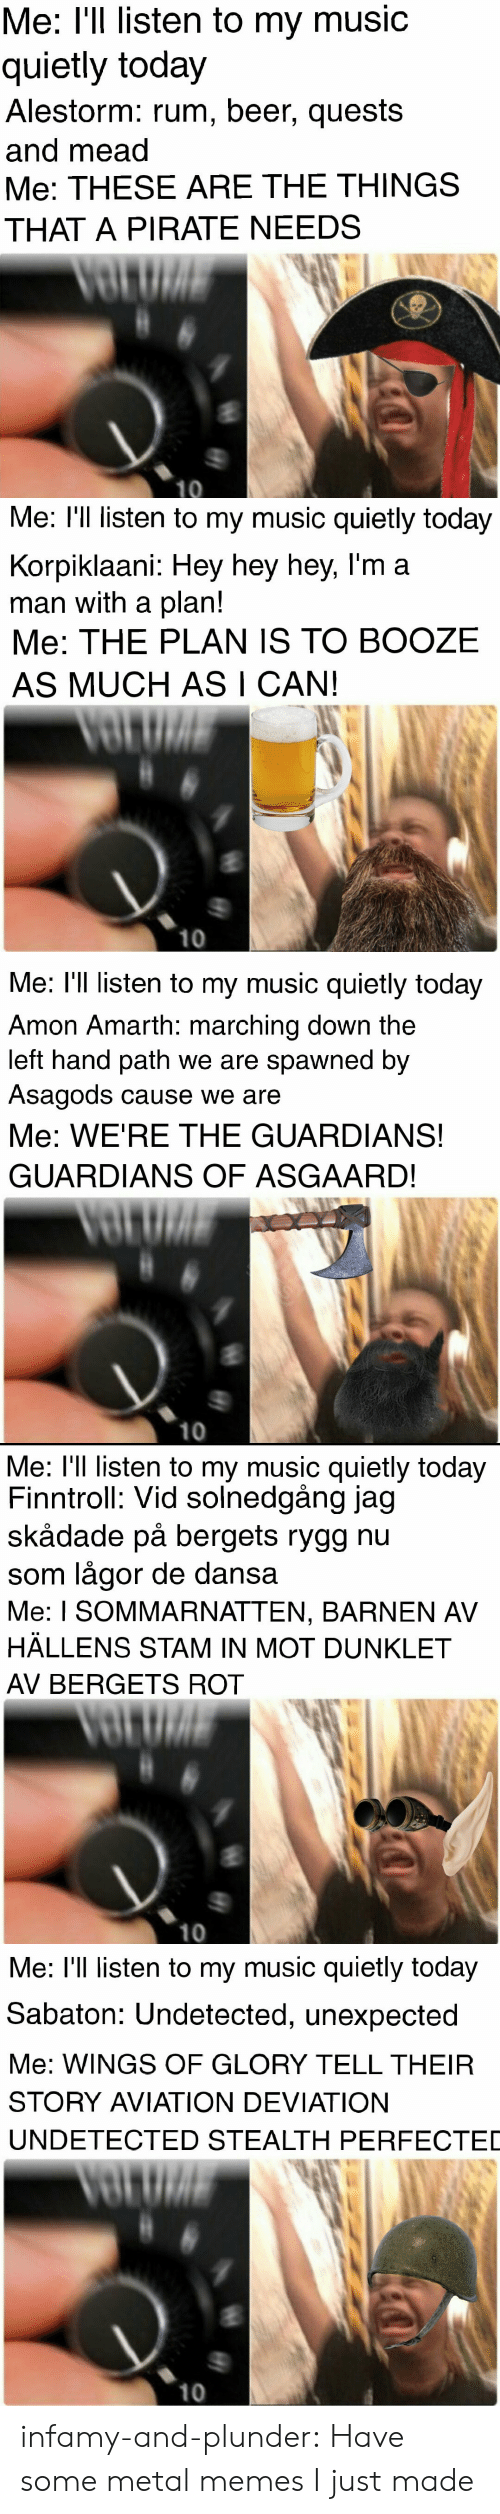 Beer, Memes, and Music: Me: I'l listen to my music  quietly today  Alestorm: rum, beer, quests  and mead  Me: THESE ARE THE THINGS  THAT A PIRATE NEEDS   Me: l'll listen to my music quietly today  Korpiklaani: Hey hey hey, l'm a  man with a plan!  Me: THE PLAN 1S TO BOOZE  AS MUCH AS I CAN!  10   Me: l'll listen to my music quietly today  Amon Amarth: marching down the  left hand path we are spawned by  Asagods cause we are  Me: WE'RE THE GUARDIANS!  GUARDIANS OF ASGAARD!  10   Me: l'll listen to my music quietly today  Finntroll: Vid solnedgång jag  skådade på bergets rygg nu  som lågor de dans:a  Me: I SOMMARNATTEN, BARNEN AV  HÄLLENS STAM IN MOT DUNKLET  AV BERGETS ROT  10   Me: l'll listen to my music quietly today  Sabaton: Undetected, unexpected  Me: WINGS OF GLORY TELL THEIR  STORY AVIATION DEVIATION  UNDETECTED STEALTH PERFECTED  10 infamy-and-plunder:  Have some metal memes I just made